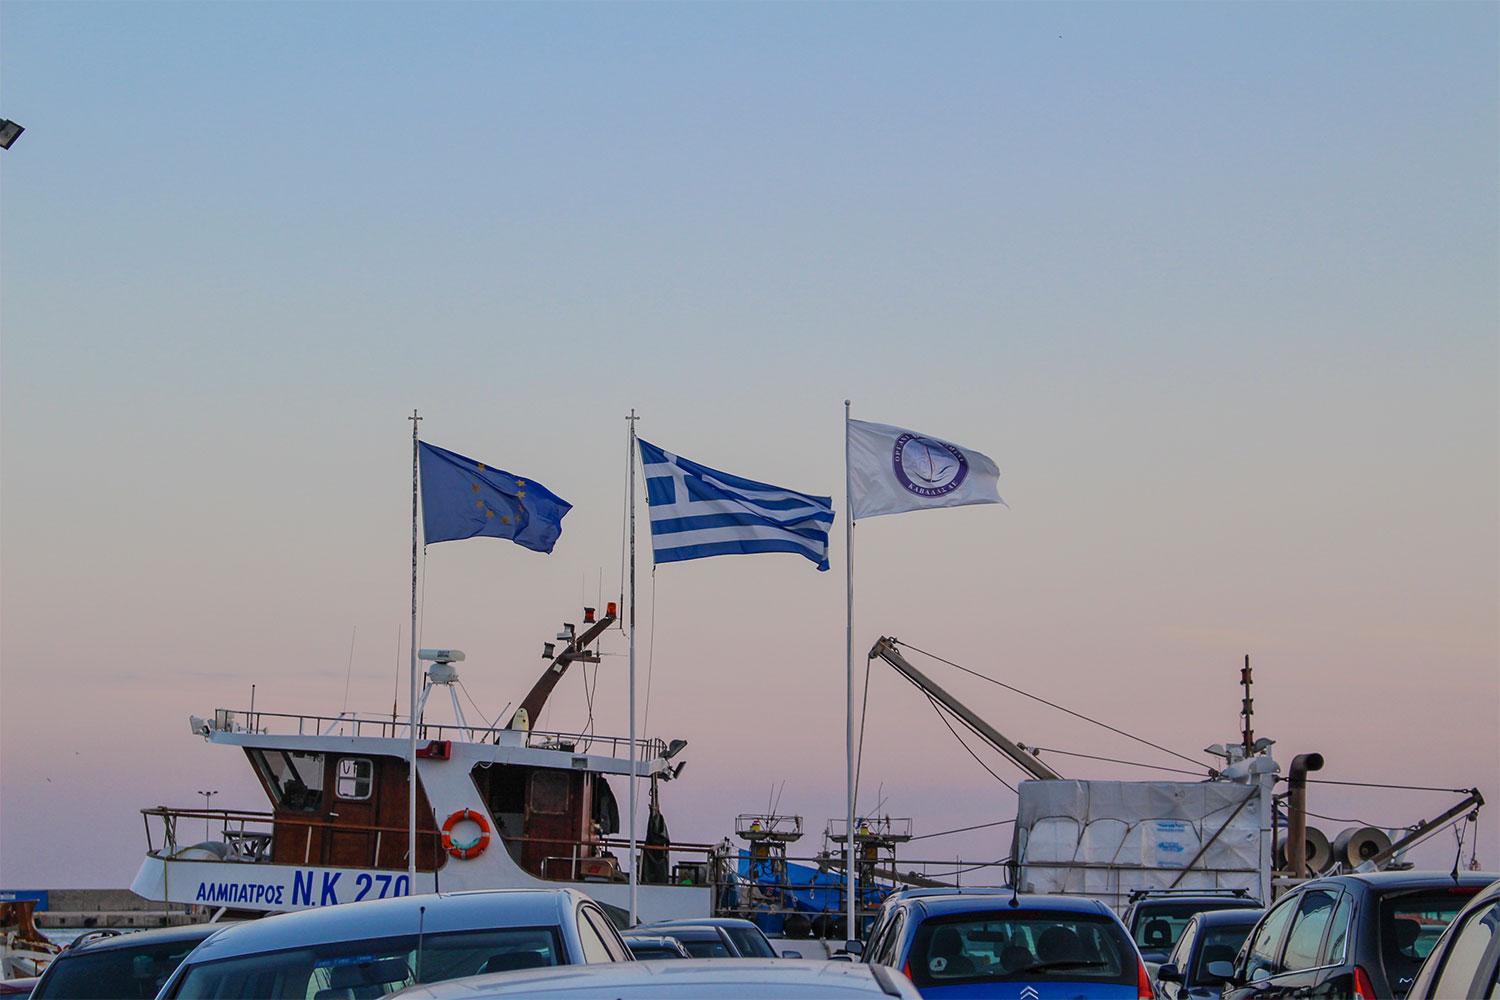 Sunset at the harbor in City of Drama, Greece with the flags